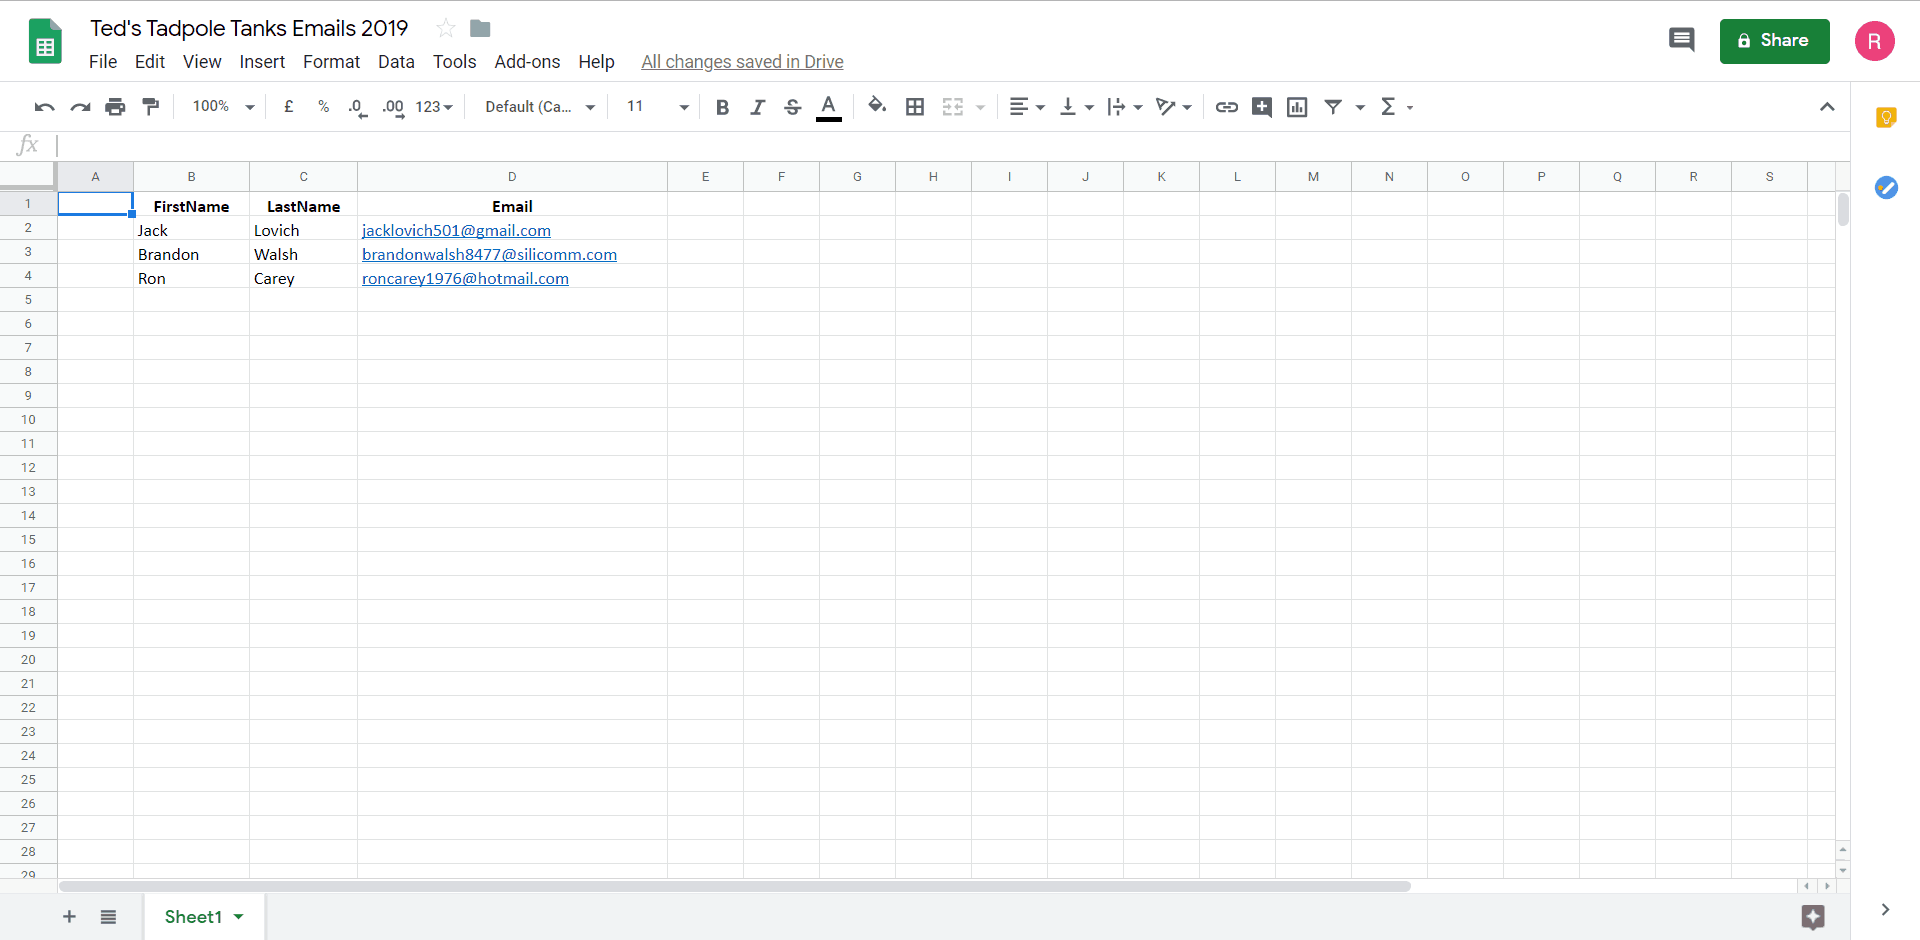 shows the GSheets after deleting rows